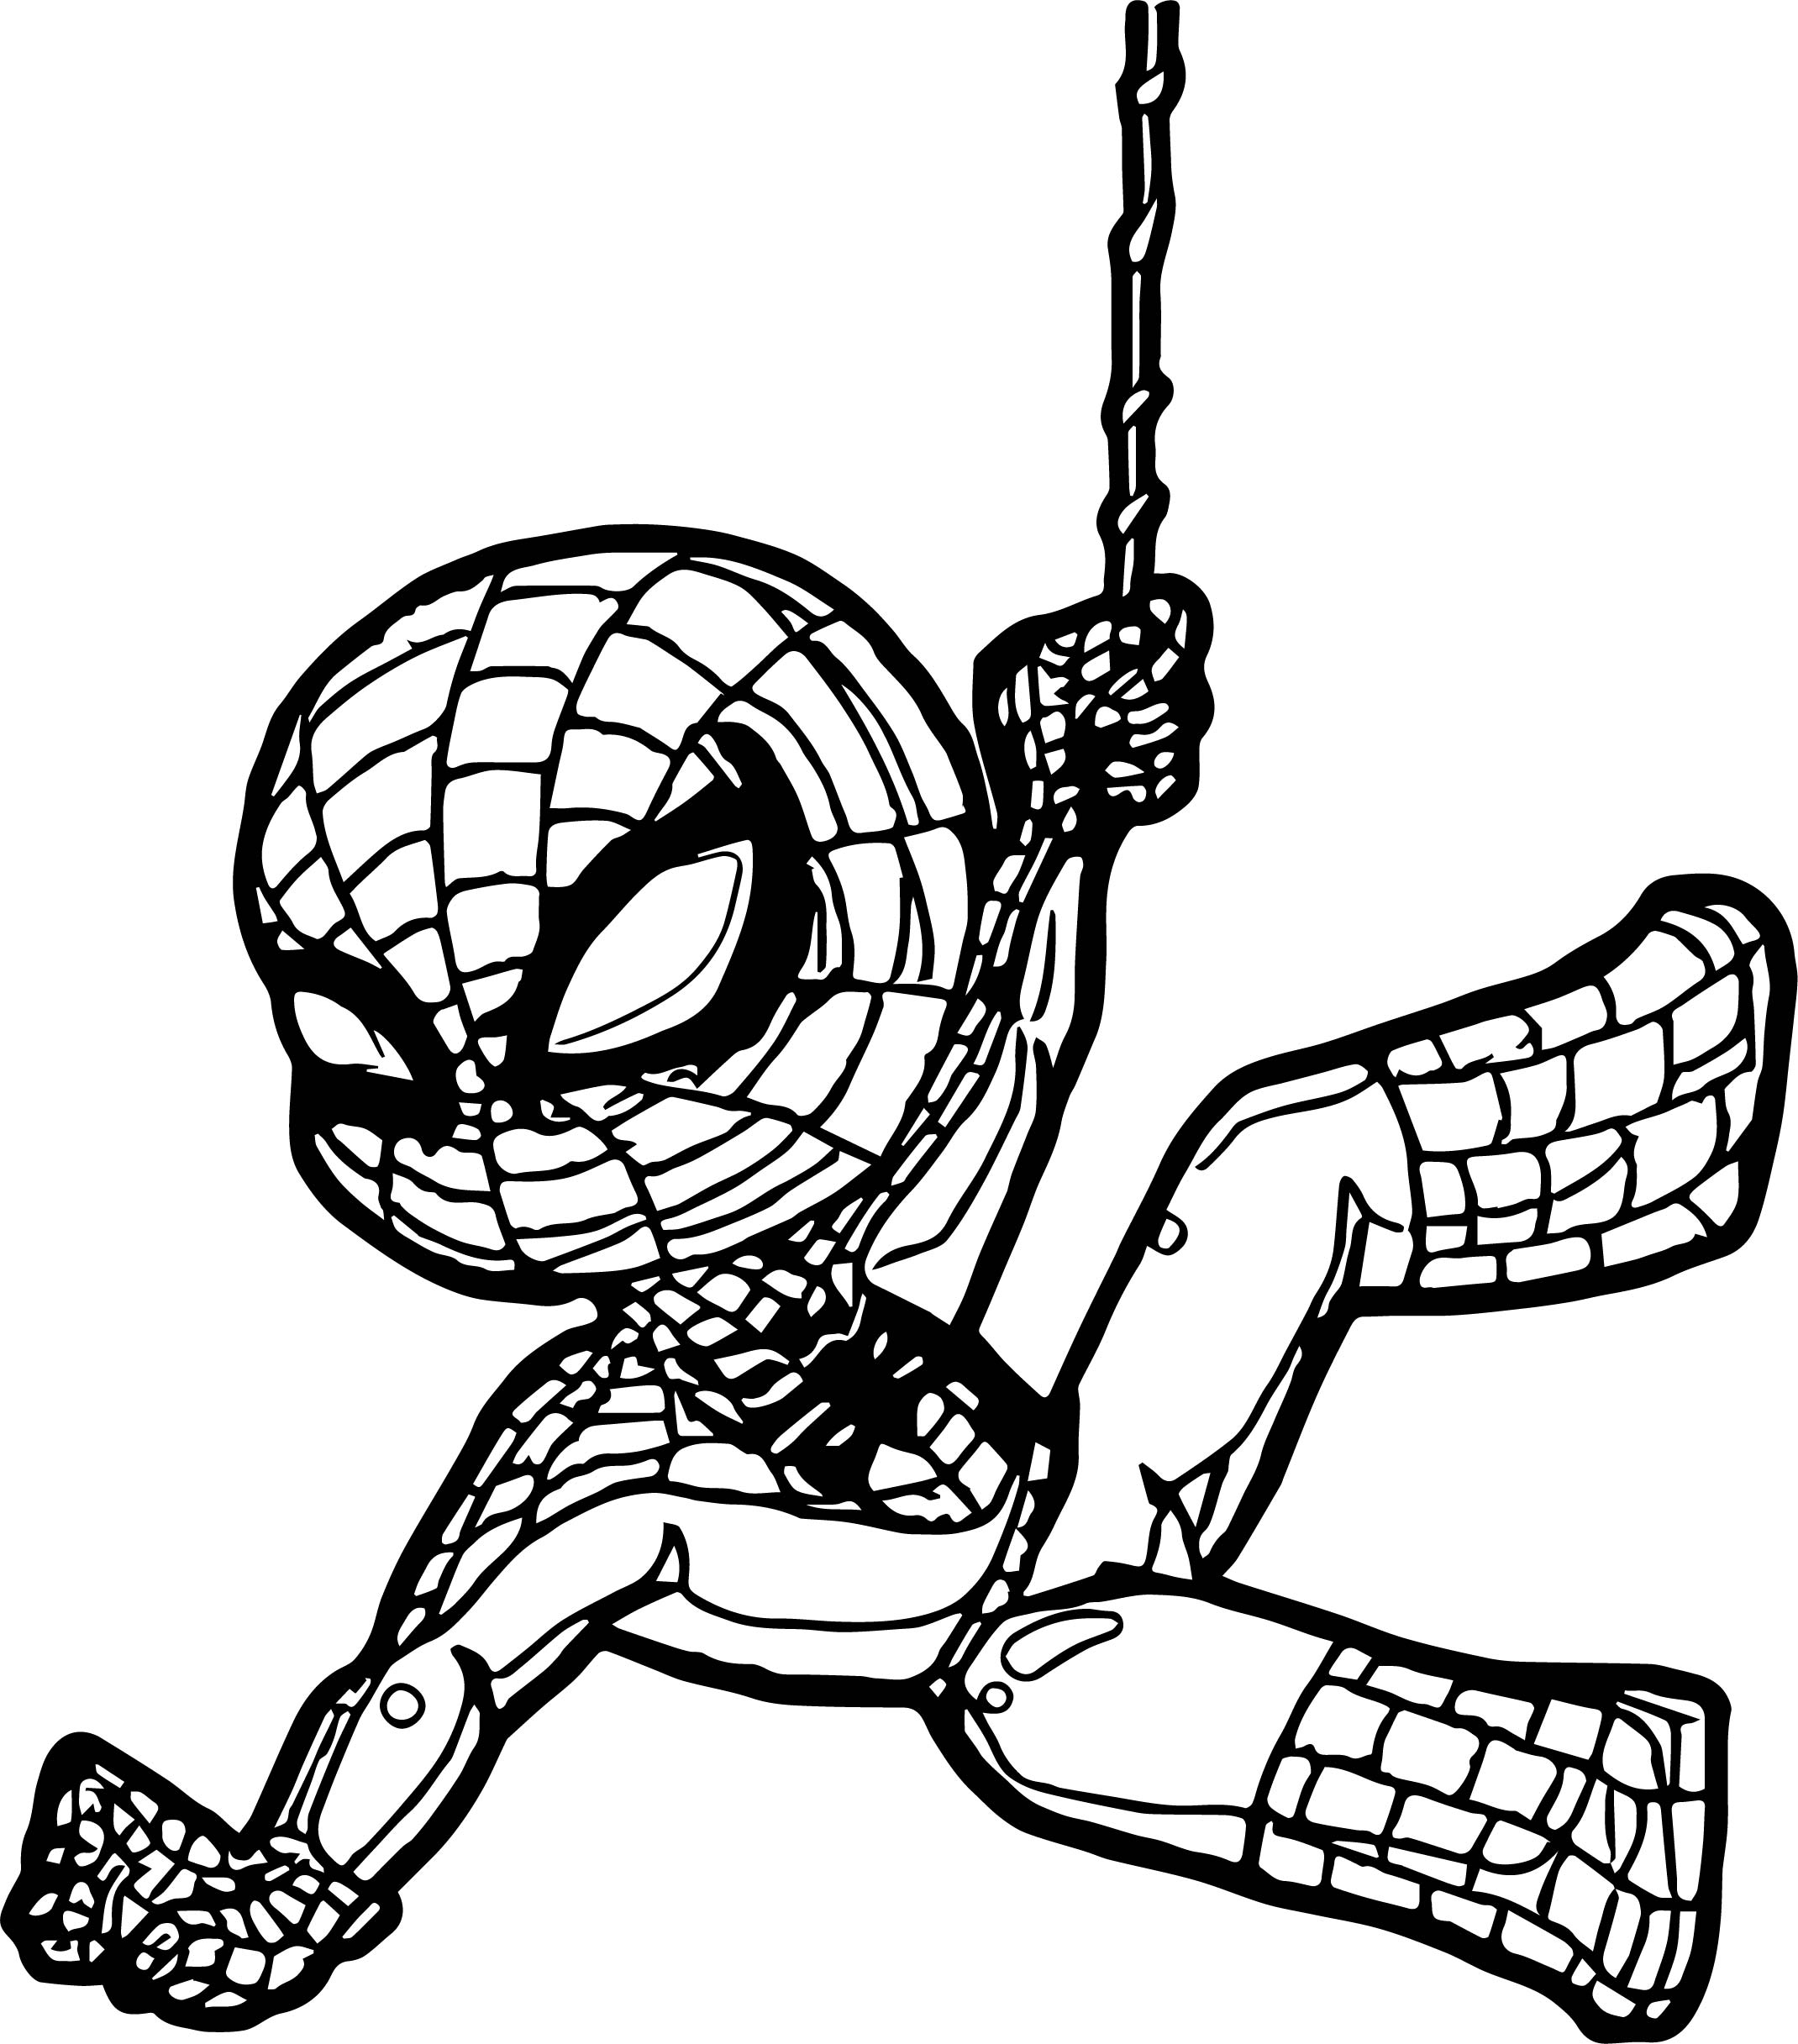 spiderman color page - child spider man coloring page